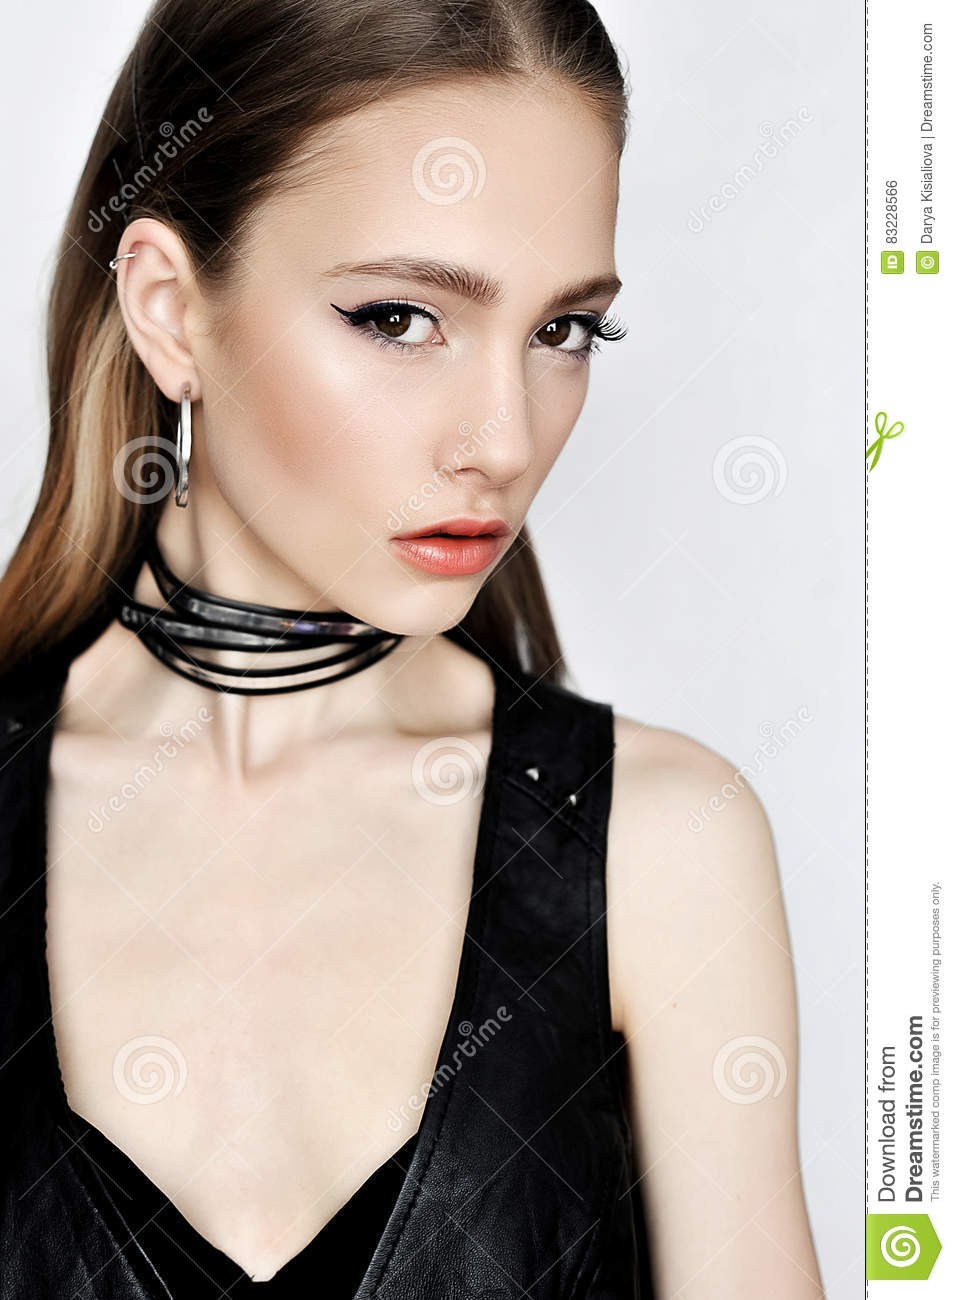 Punk Rock Style. Fashion Woman Model Face With Glamour Makeup. Stock Photo - Image 83228566